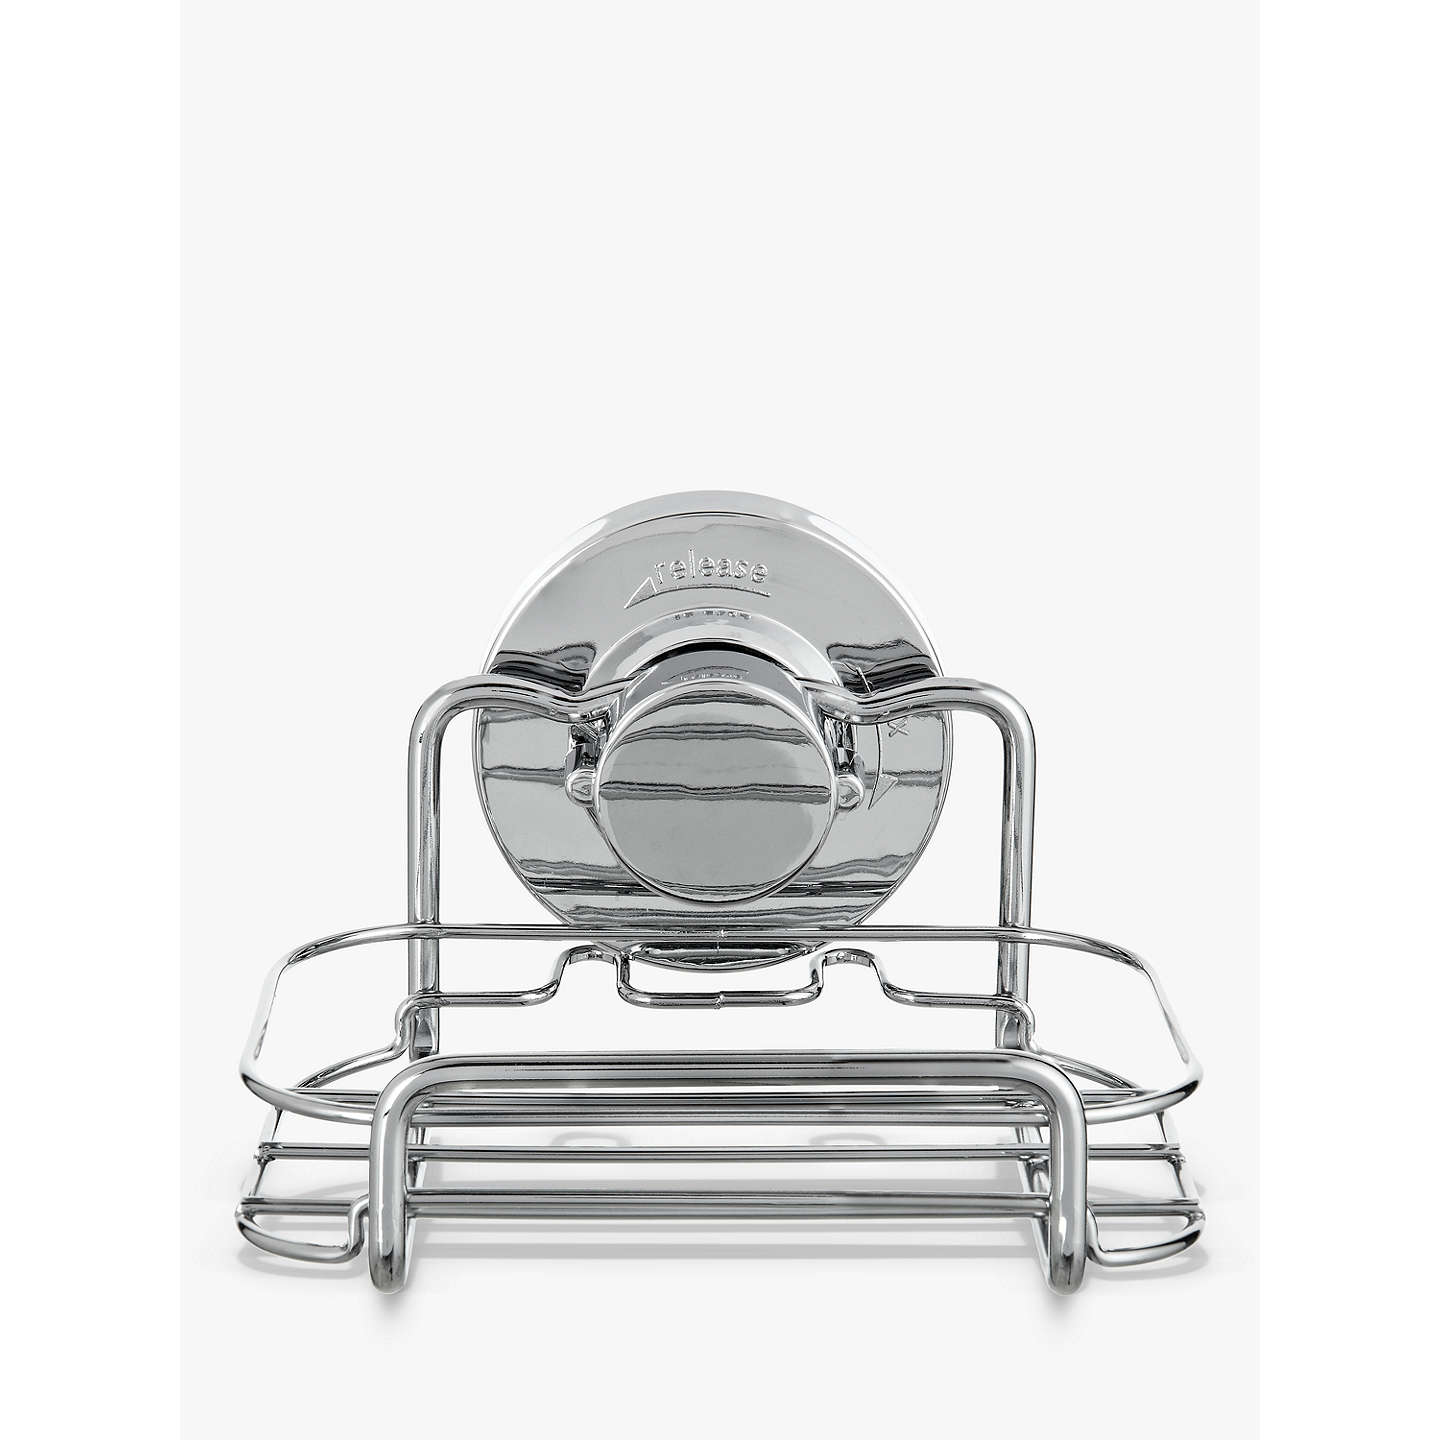 BuyBliss Lock N Roll Suction Shower Soap Dish Online At Johnlewis.com ...